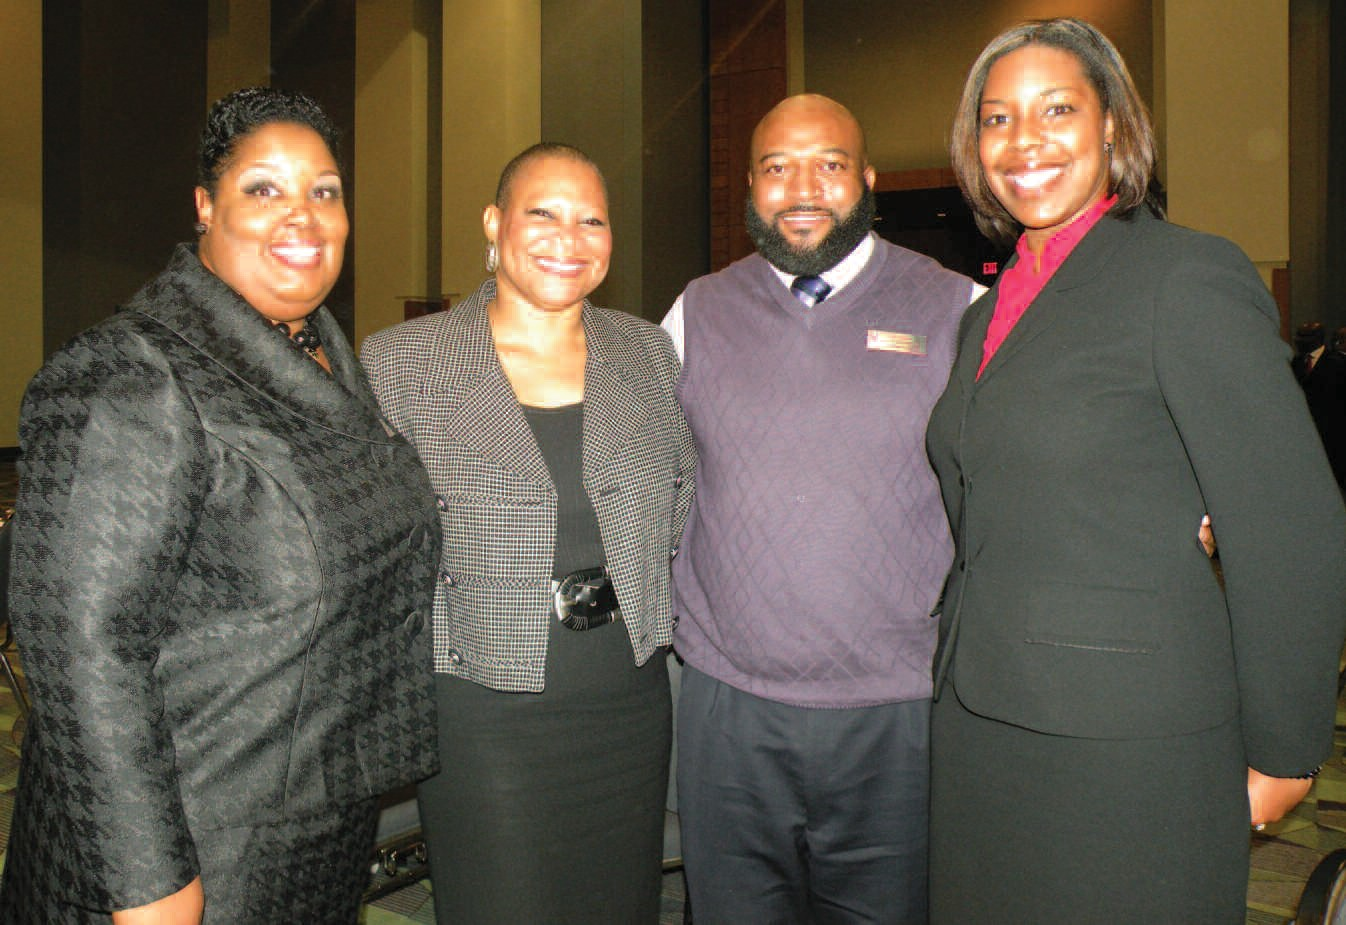 Some attendants of the MLK Community Breakfast